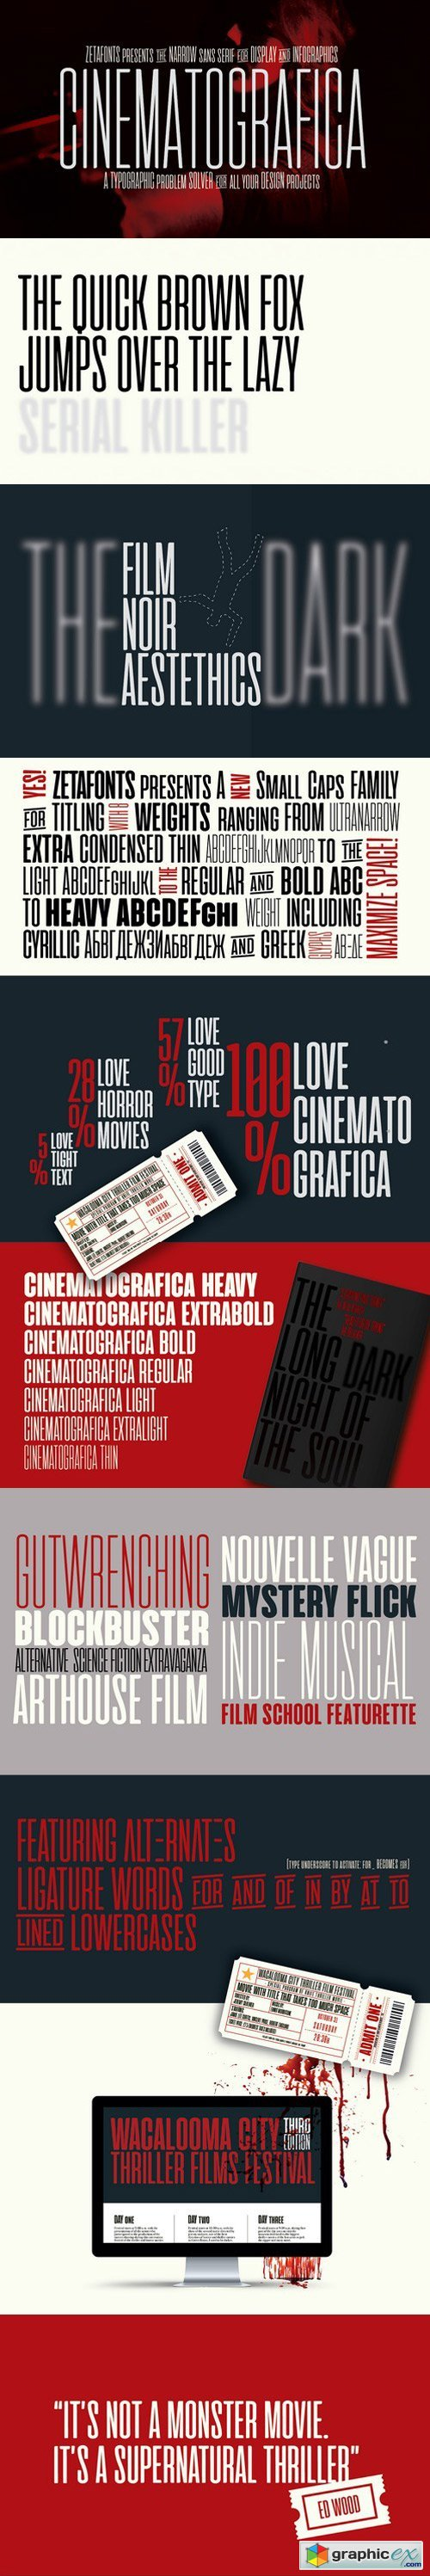 CINEMATOGRAFICA THE MOVIE FONTS